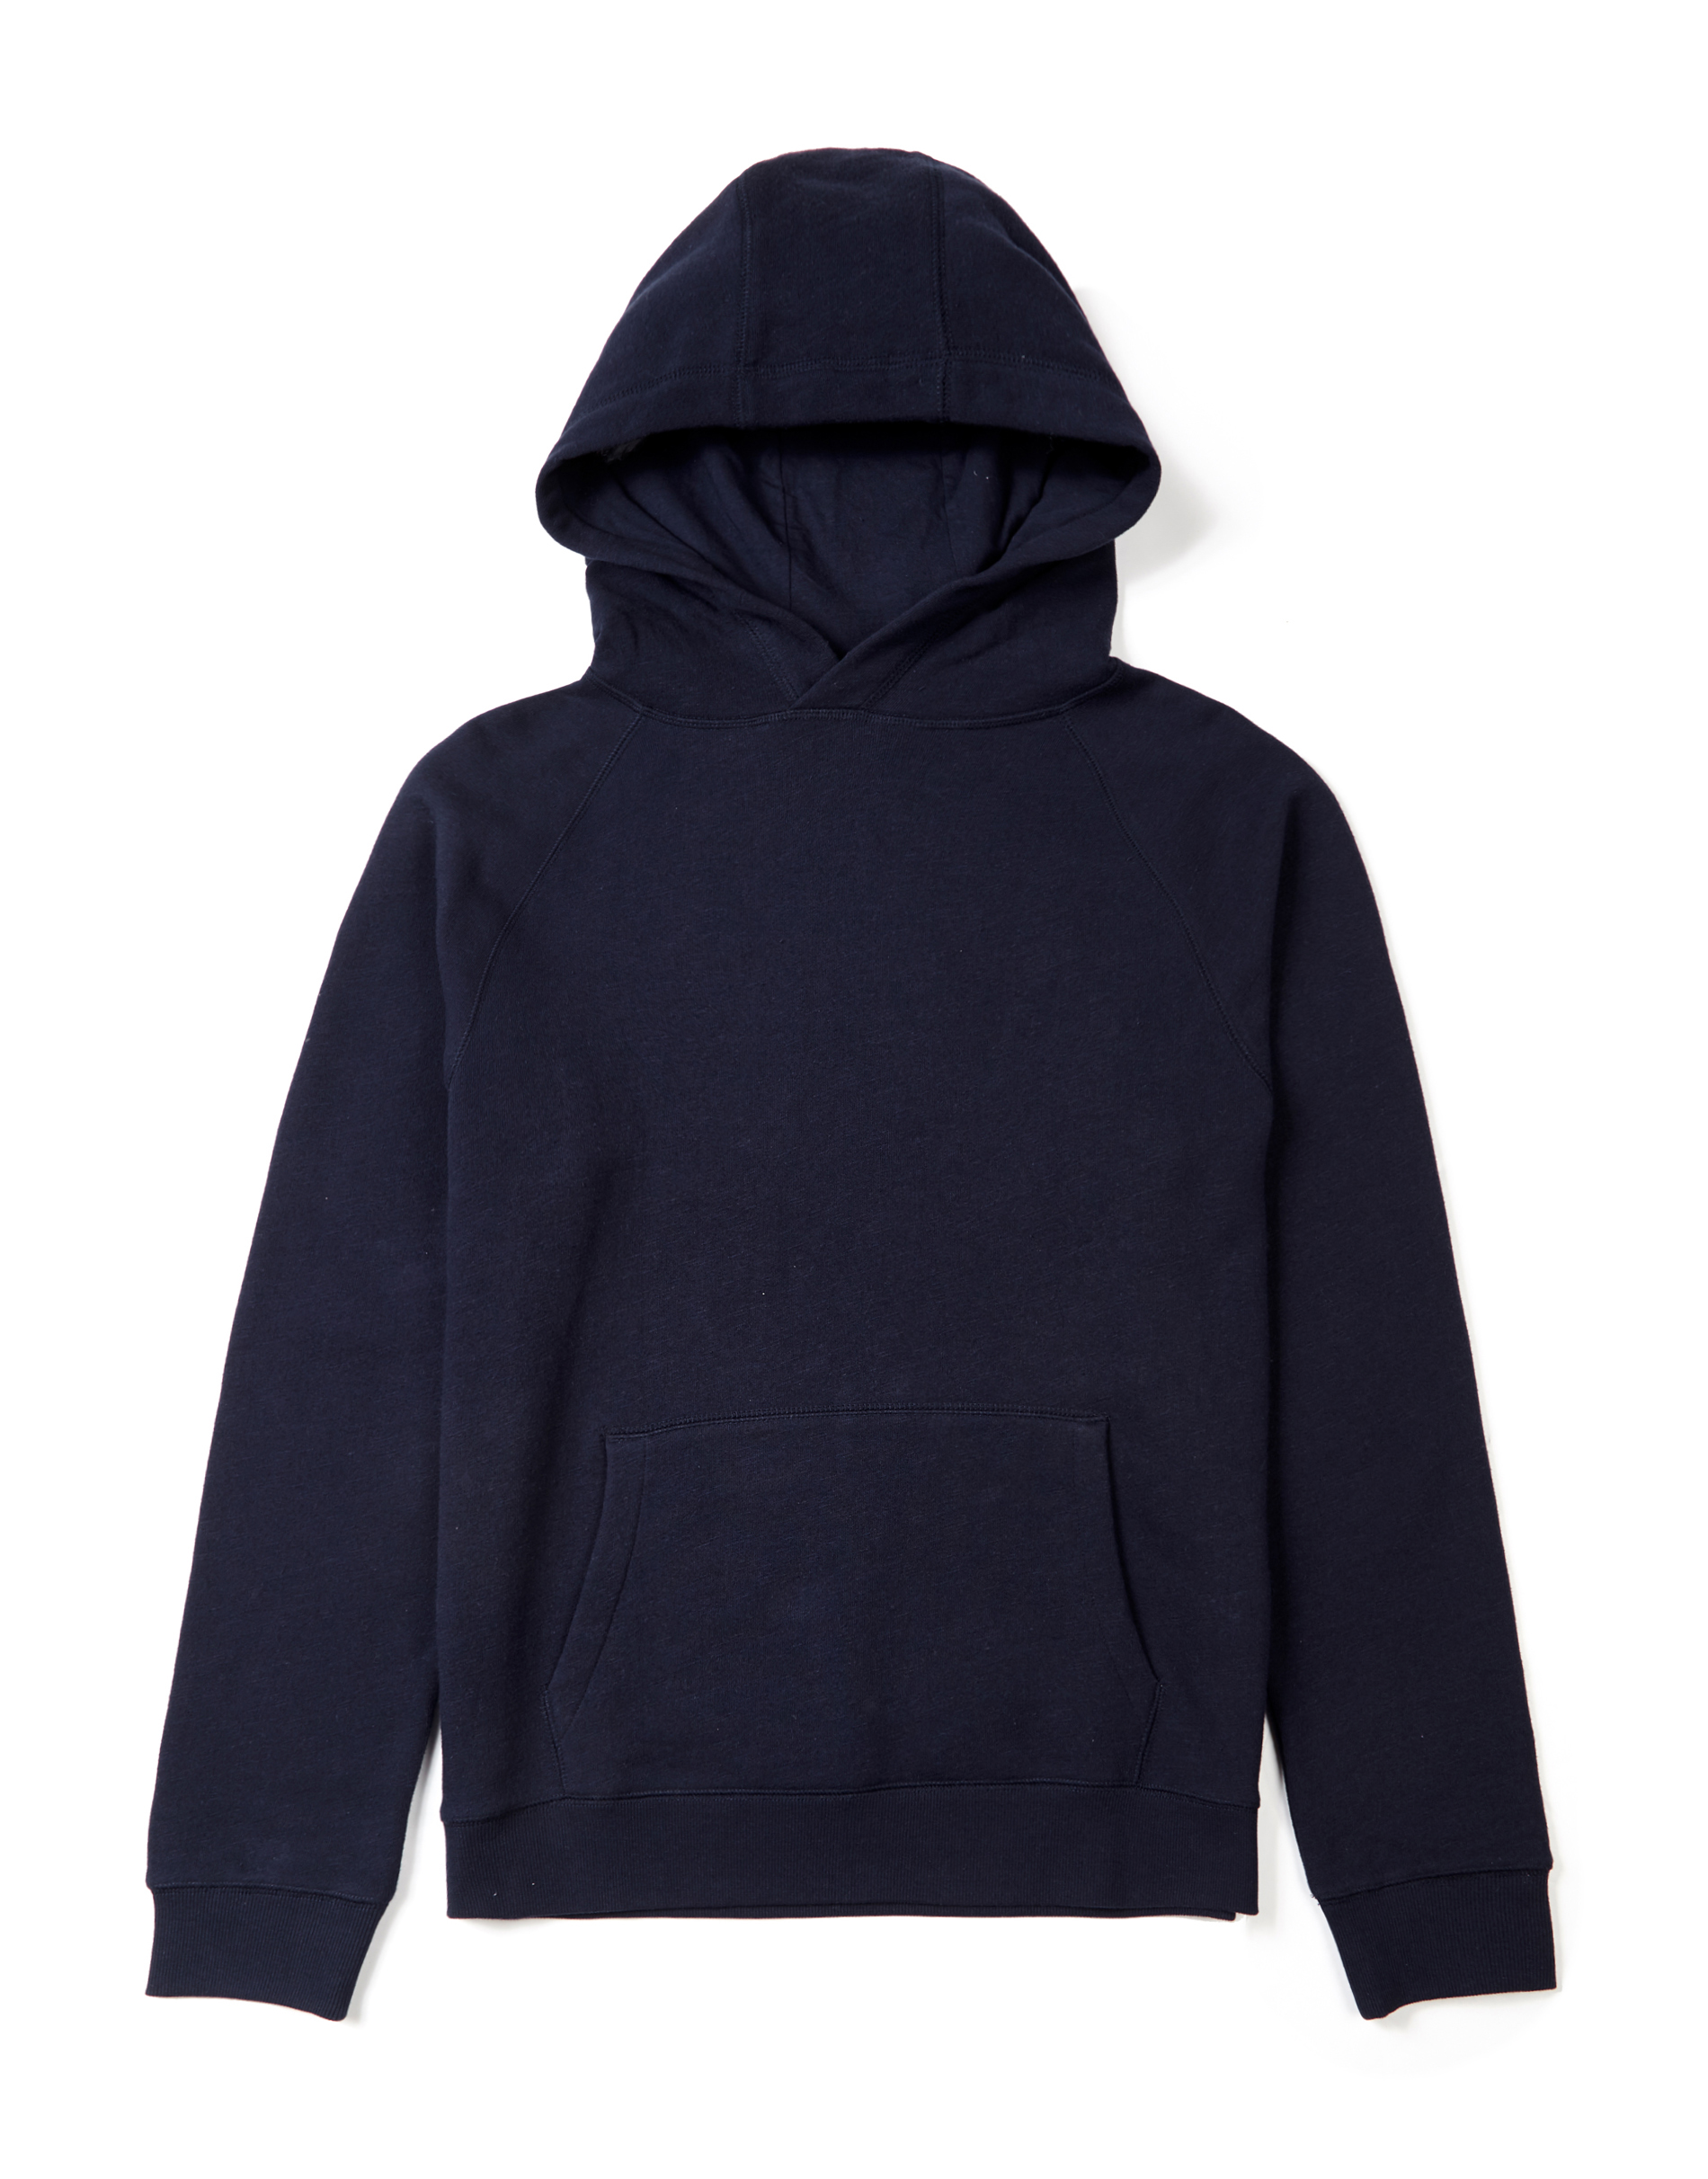 MVP Lowood Loop Back Sweat Popover Hoodie - Navy